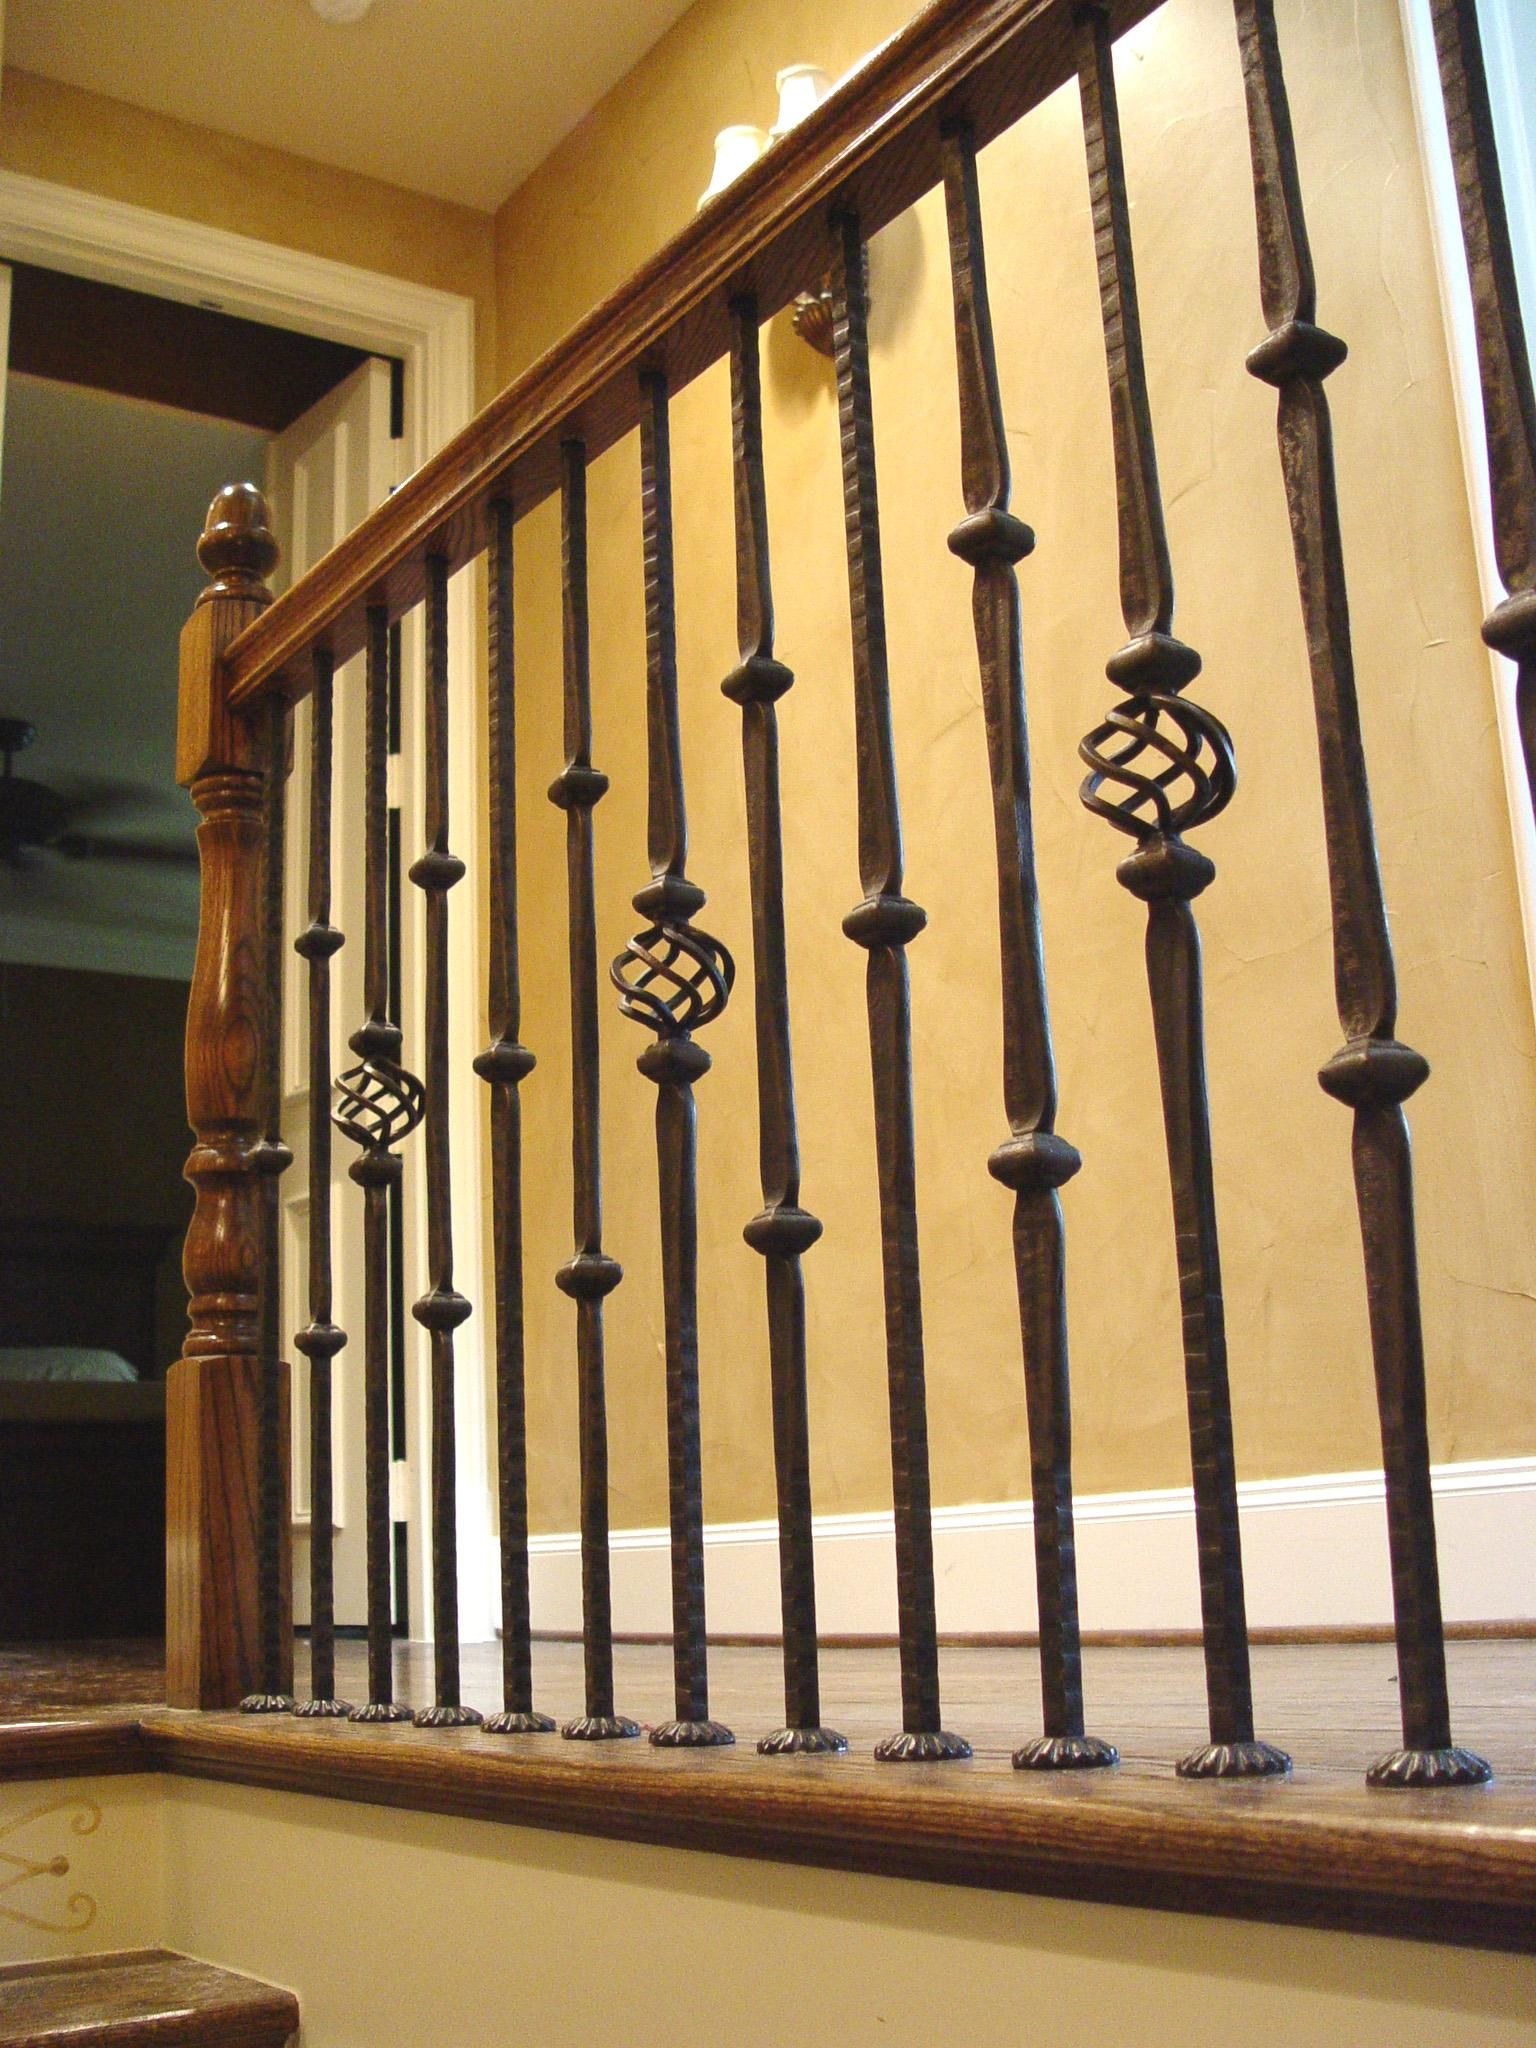 Iron Balusters Patterns Trinity Stairs Stair Railing Design Iron Stair Railing Wrought Iron Stair Railing